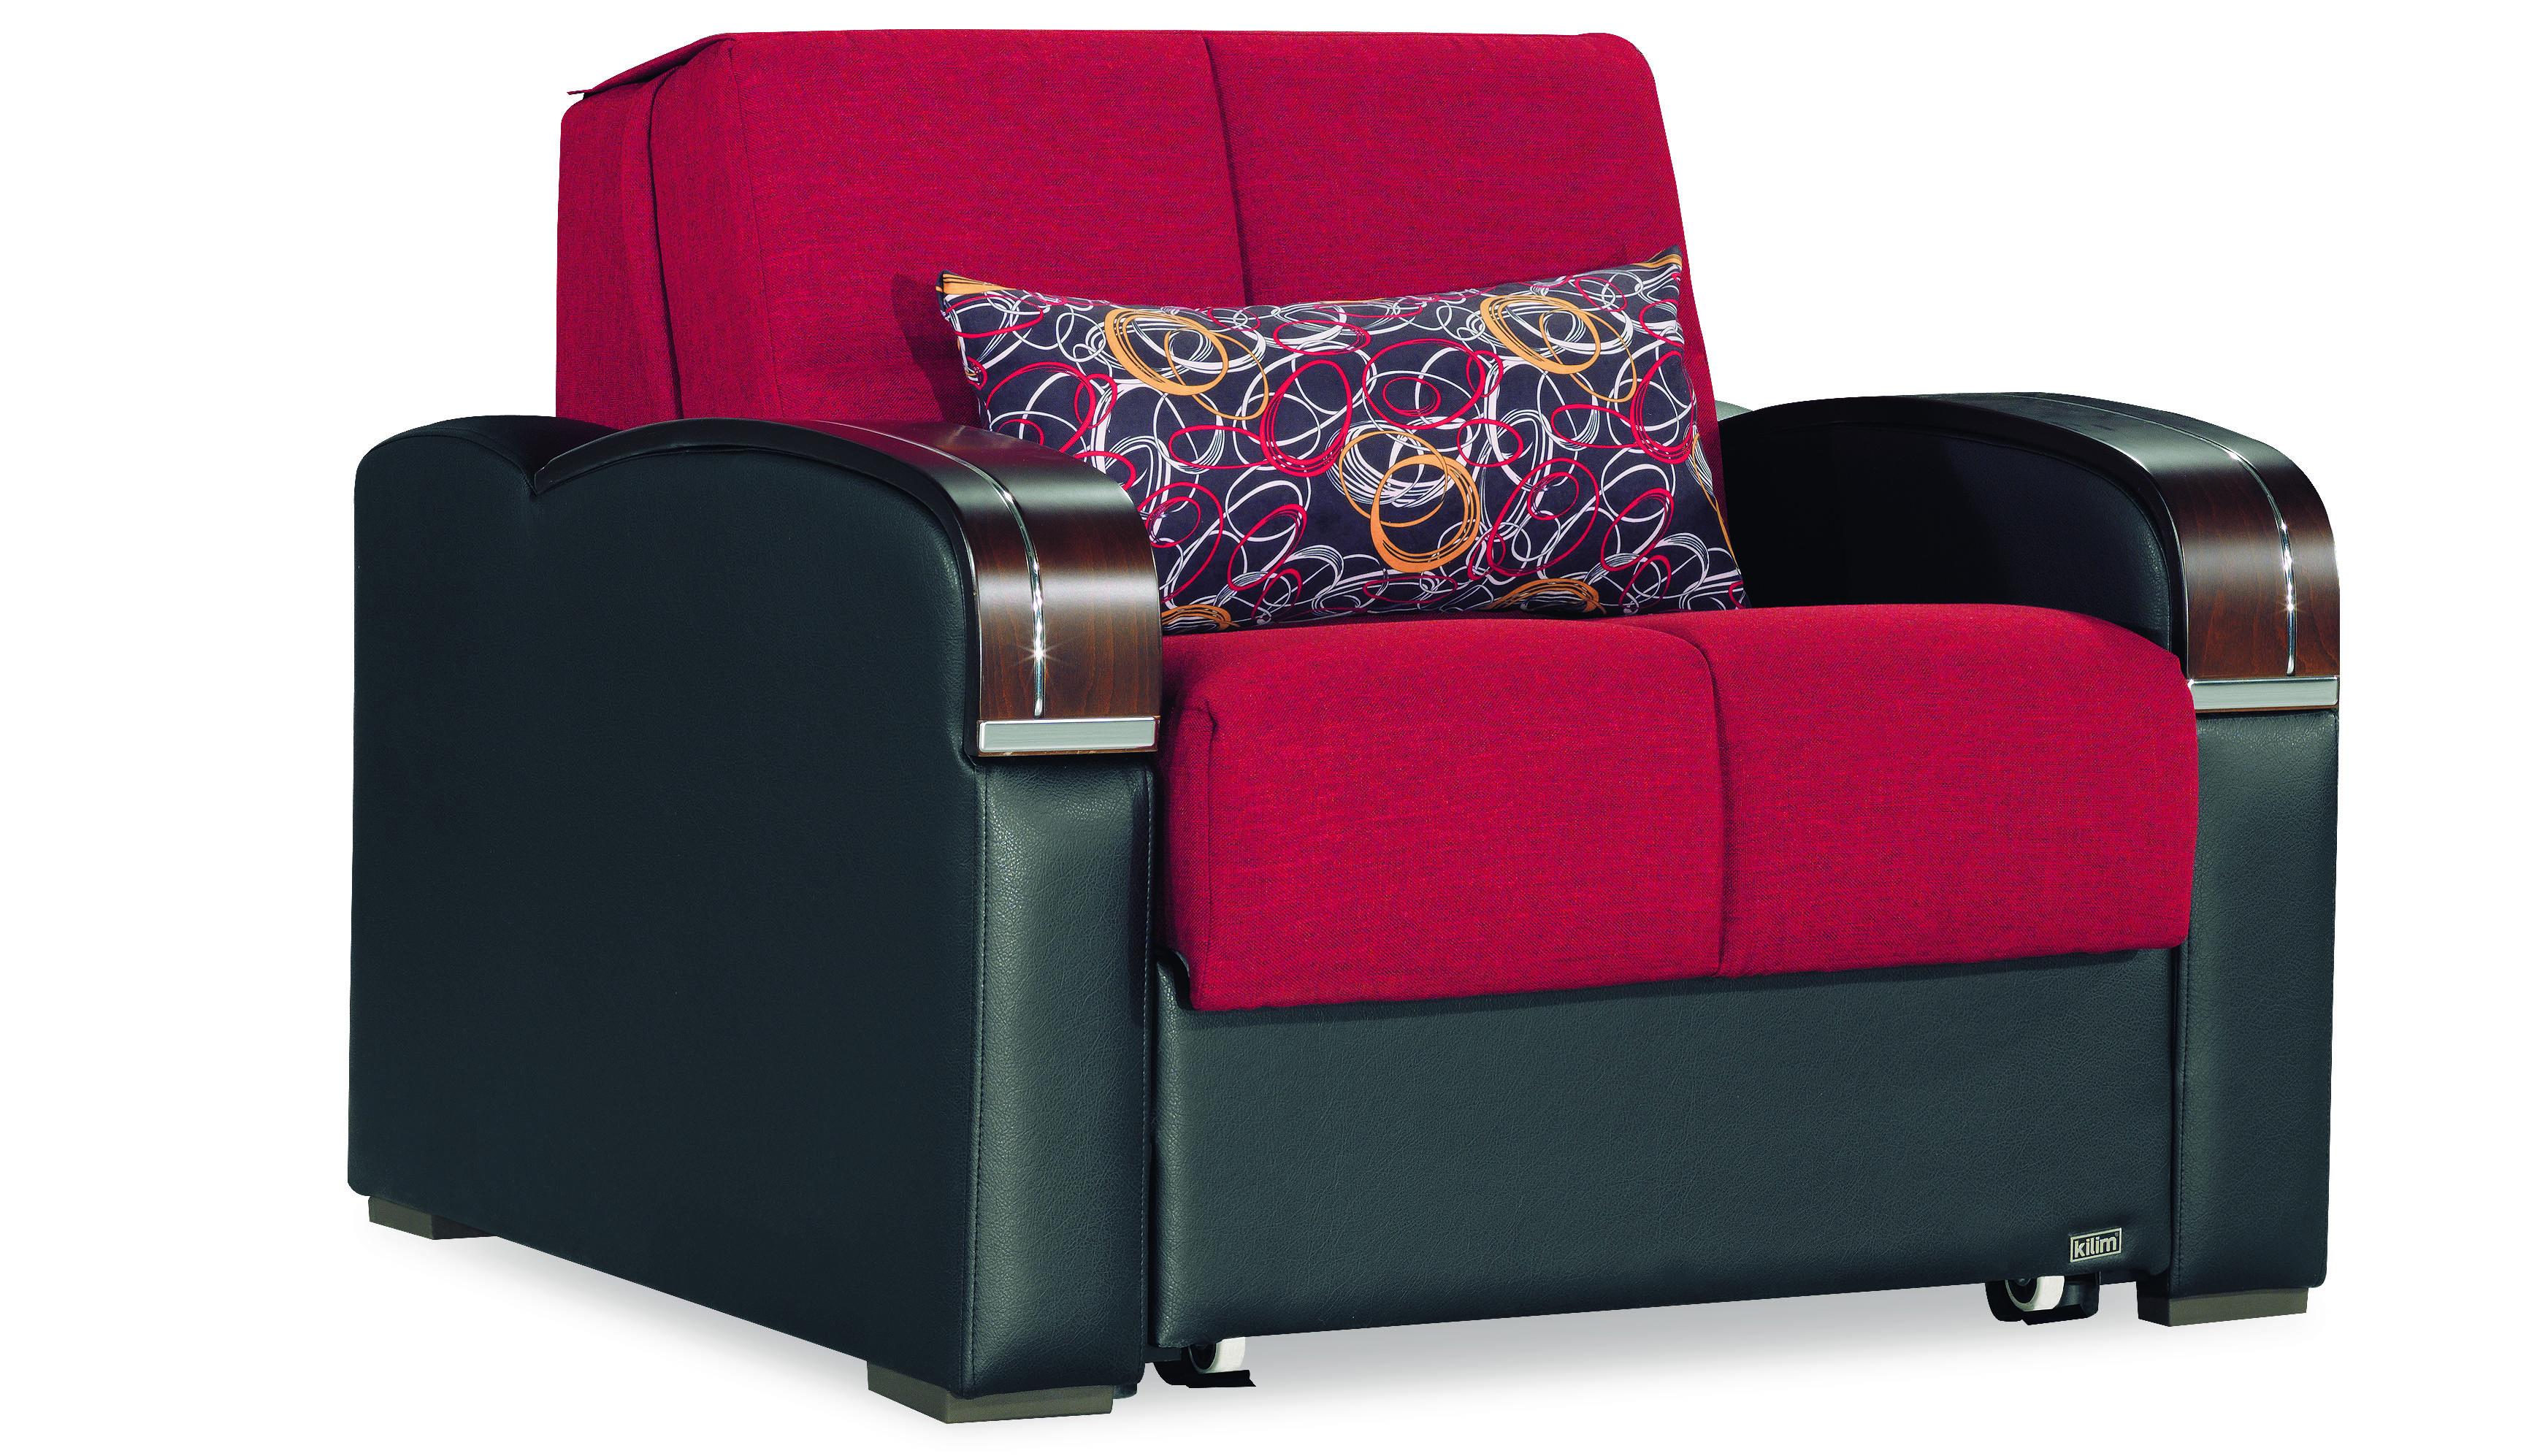 low priced e5a31 c19a5 Sleep Plus Red Convertible Chair Bed by Casamode